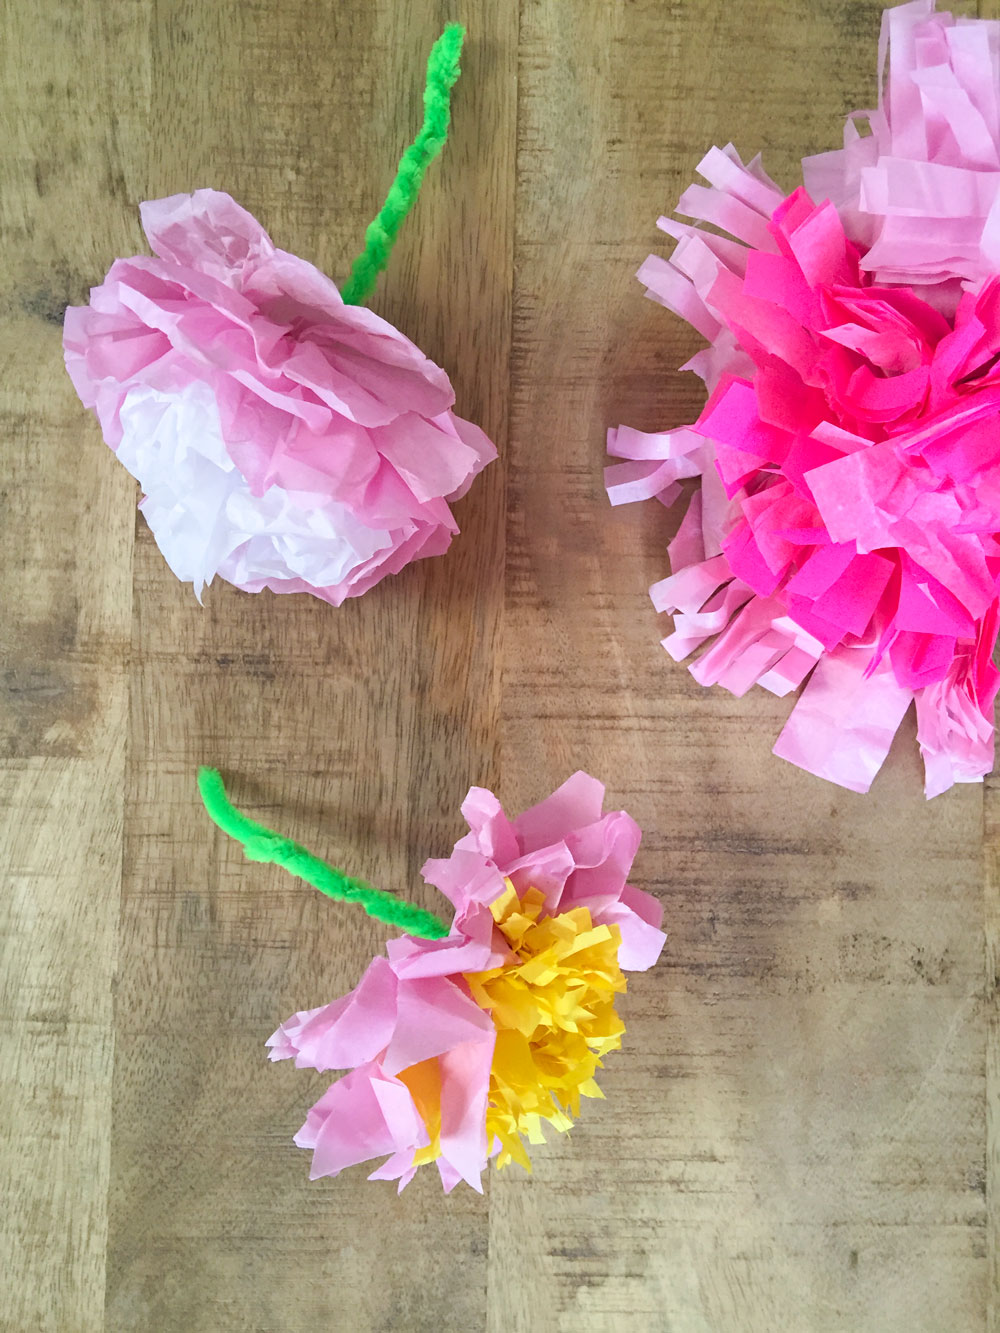 Tissue Paper Flowers Babyccino Kids: Daily tips, Children\'s products ...